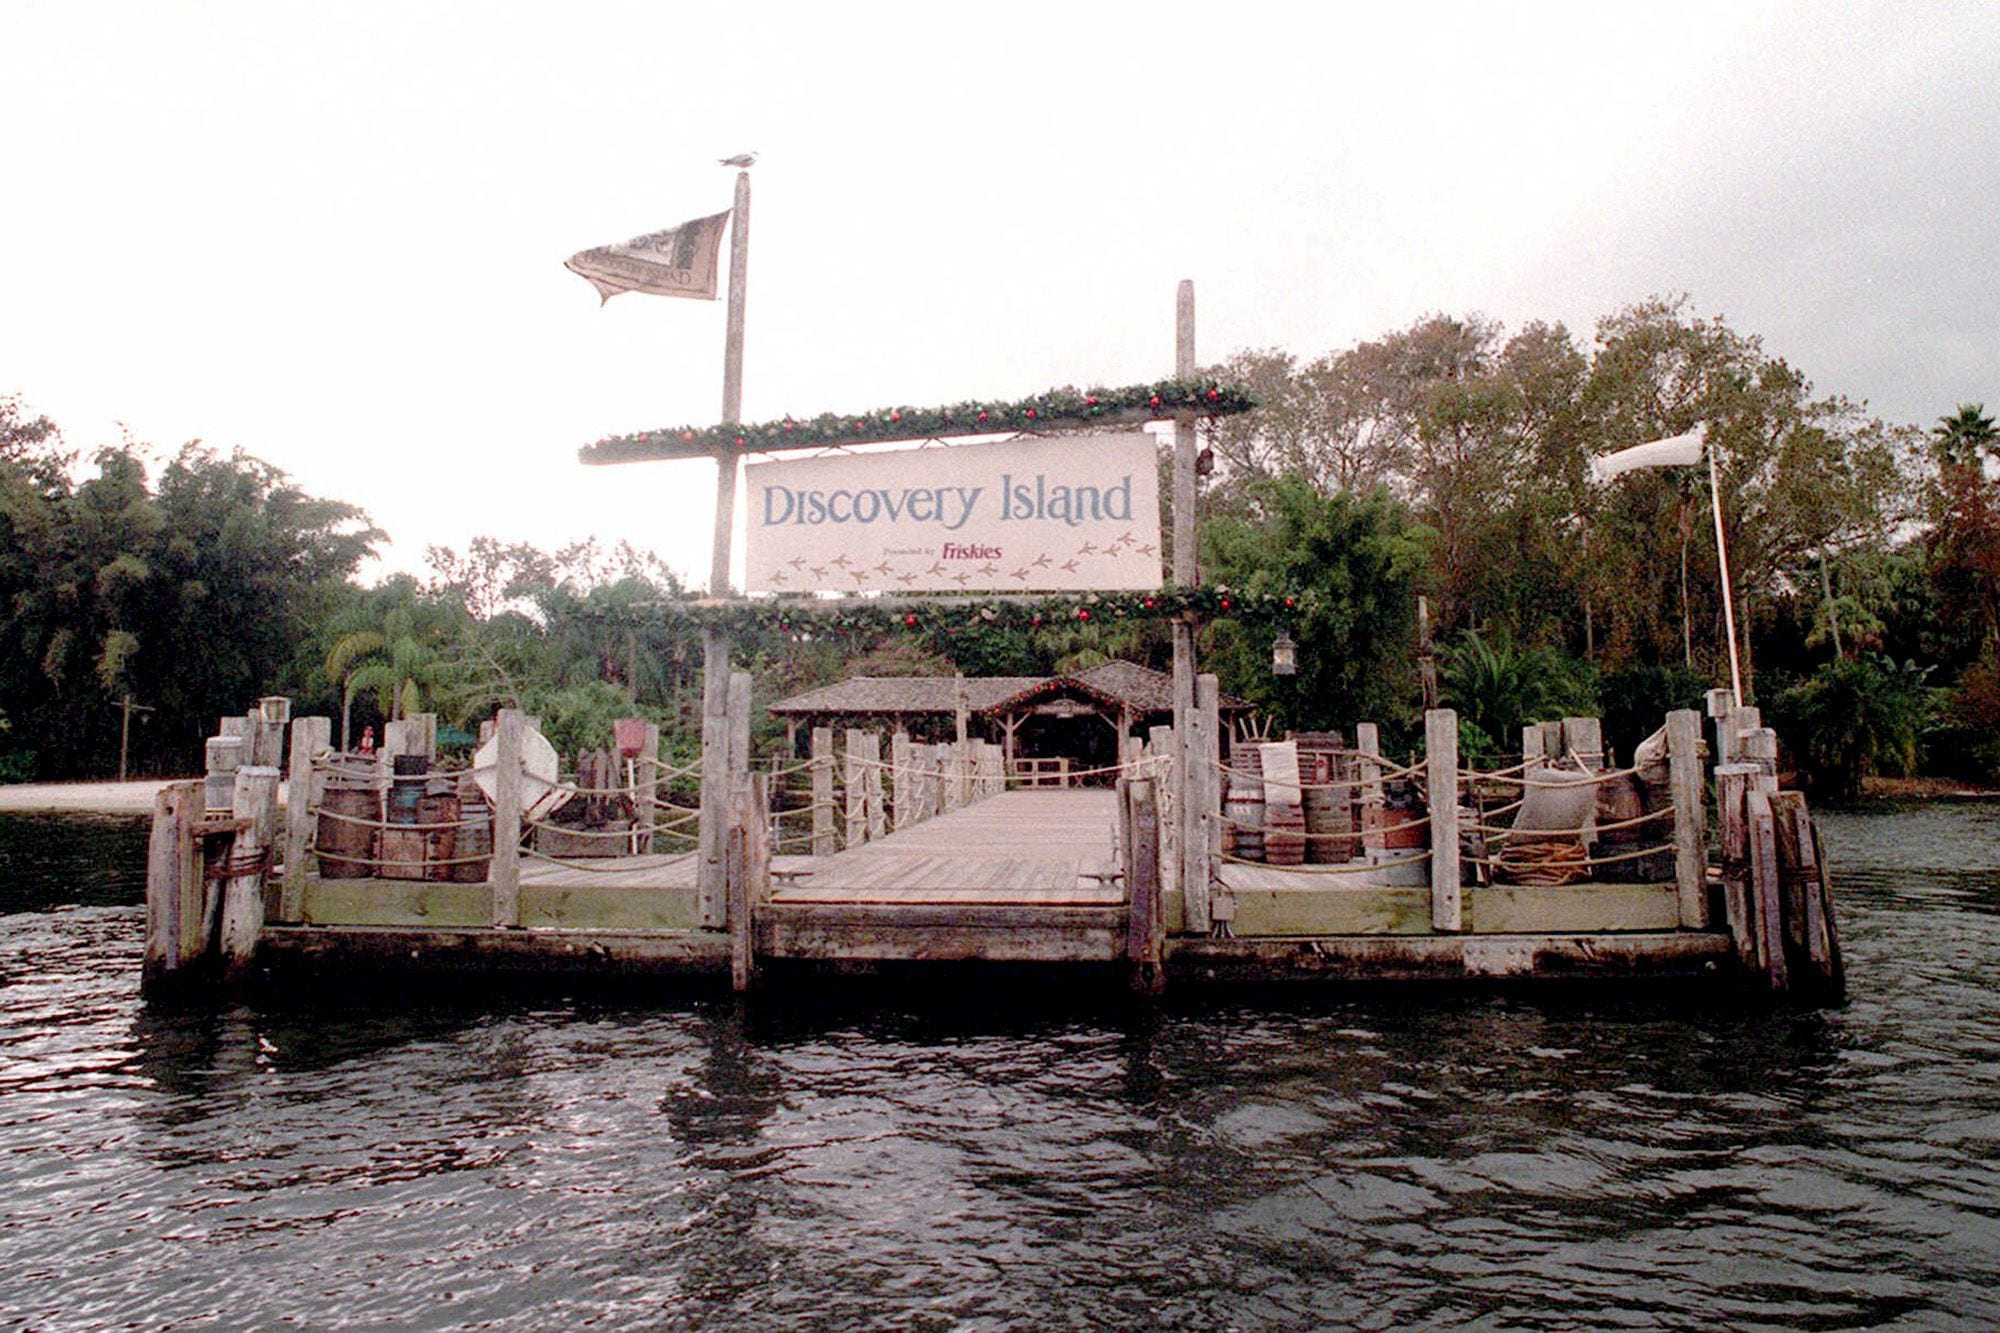 Disney World Discover Island [Source: New York Post]